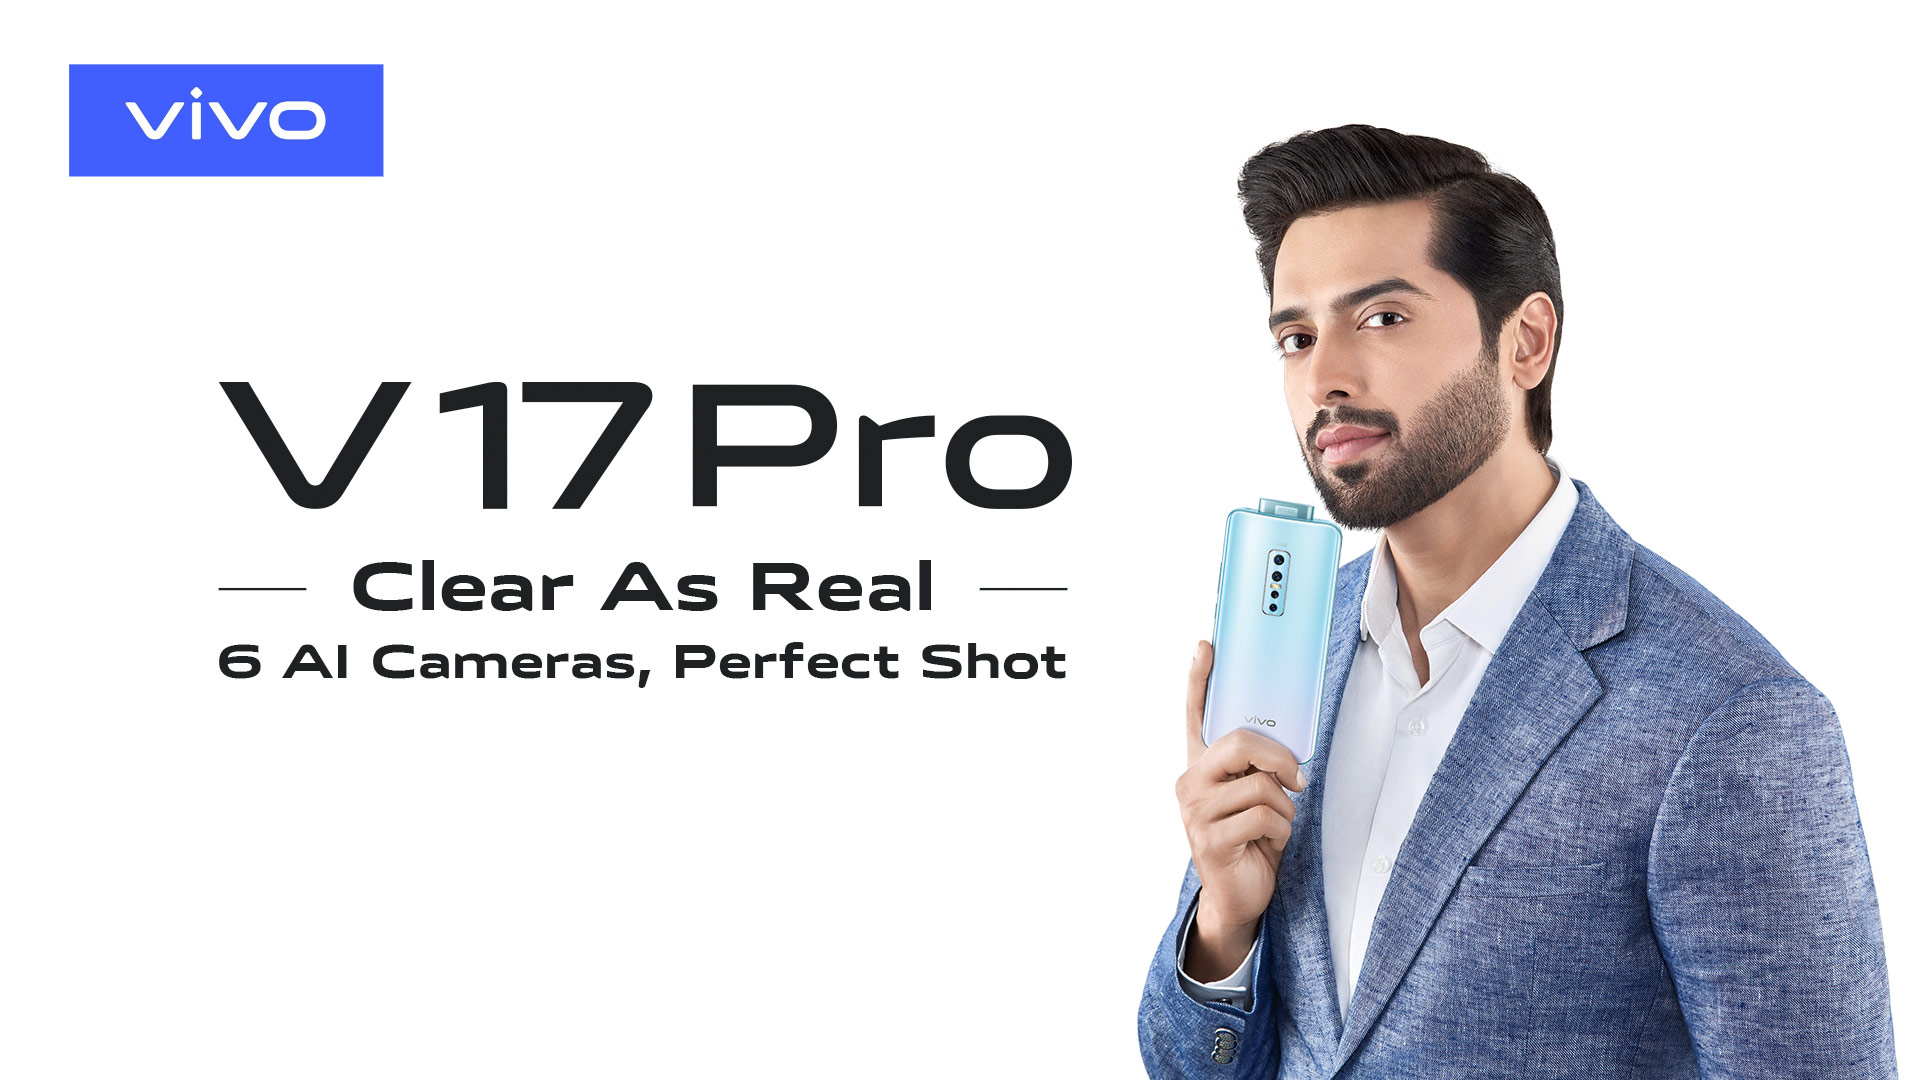 Vivo V17 Pro Launches in Pakistan-First 32MP Dual Pop-Up Camera